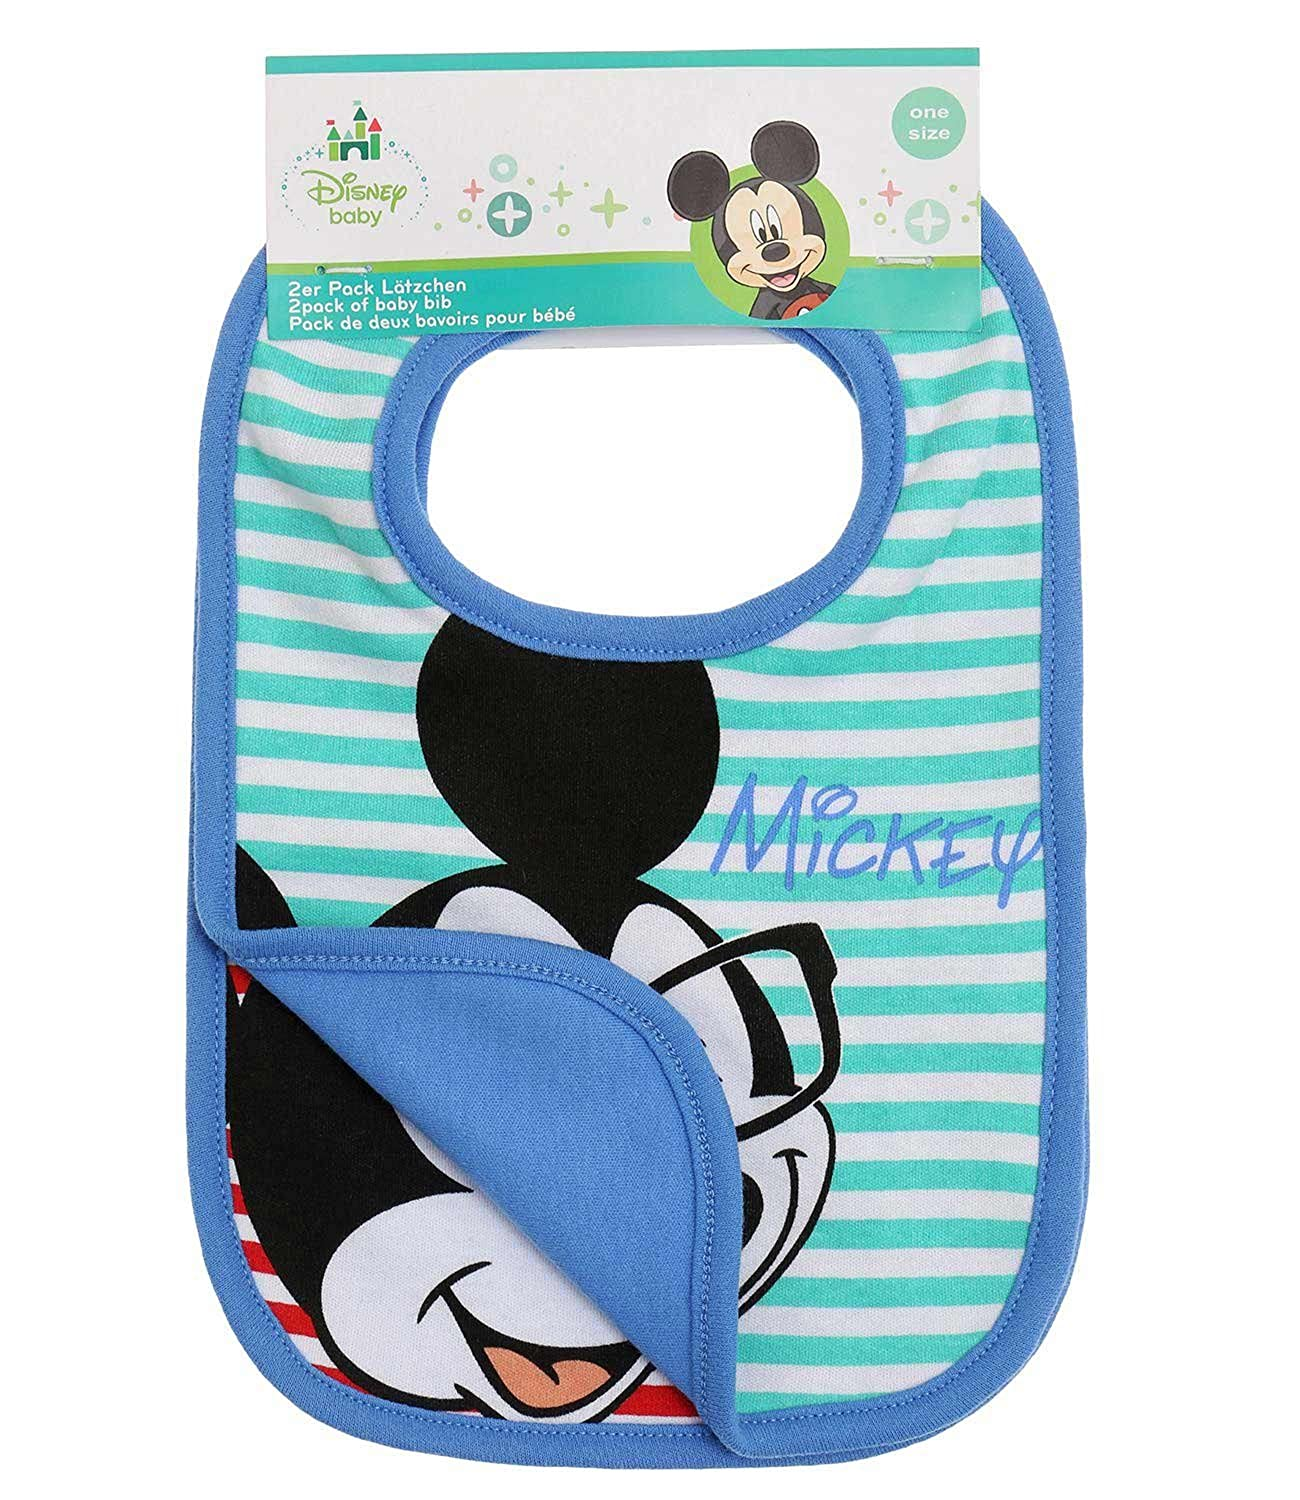 Disney Mickey Babies babero:(paquete doble) 2016 Collection - Azul WS-133225